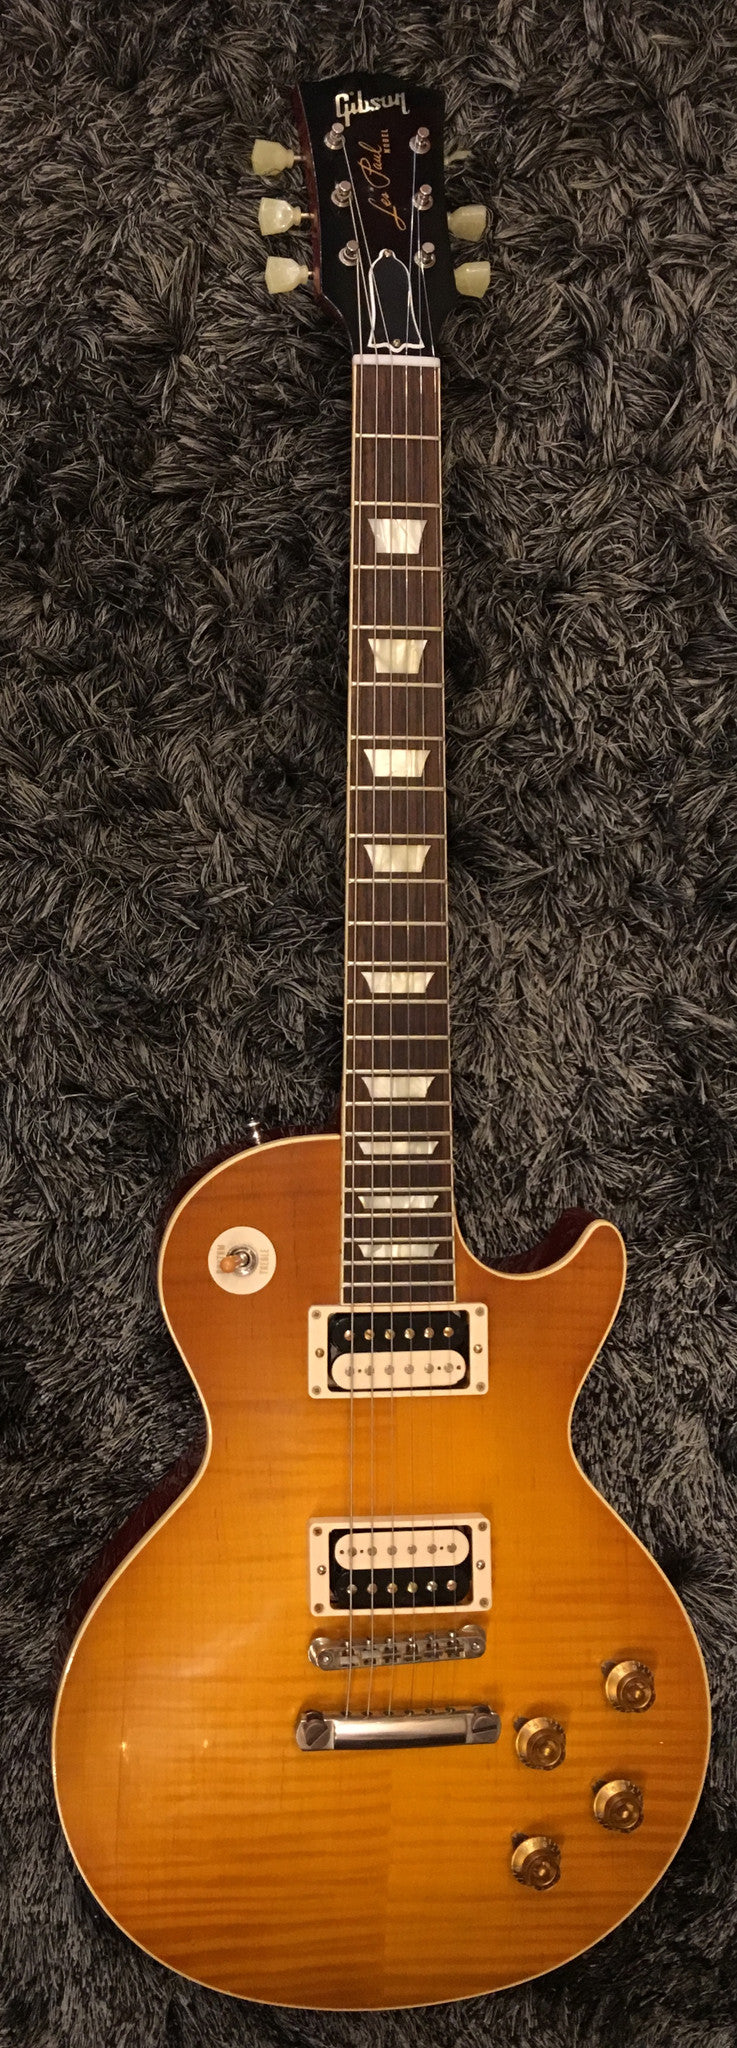 "GIBSON ""The Beauty of the Burst"" no 1 1958 LES PAUL REISSUE VOS ""HAND PICKED"" HIENDGUITAR.COM - HIENDGUITAR.COM"